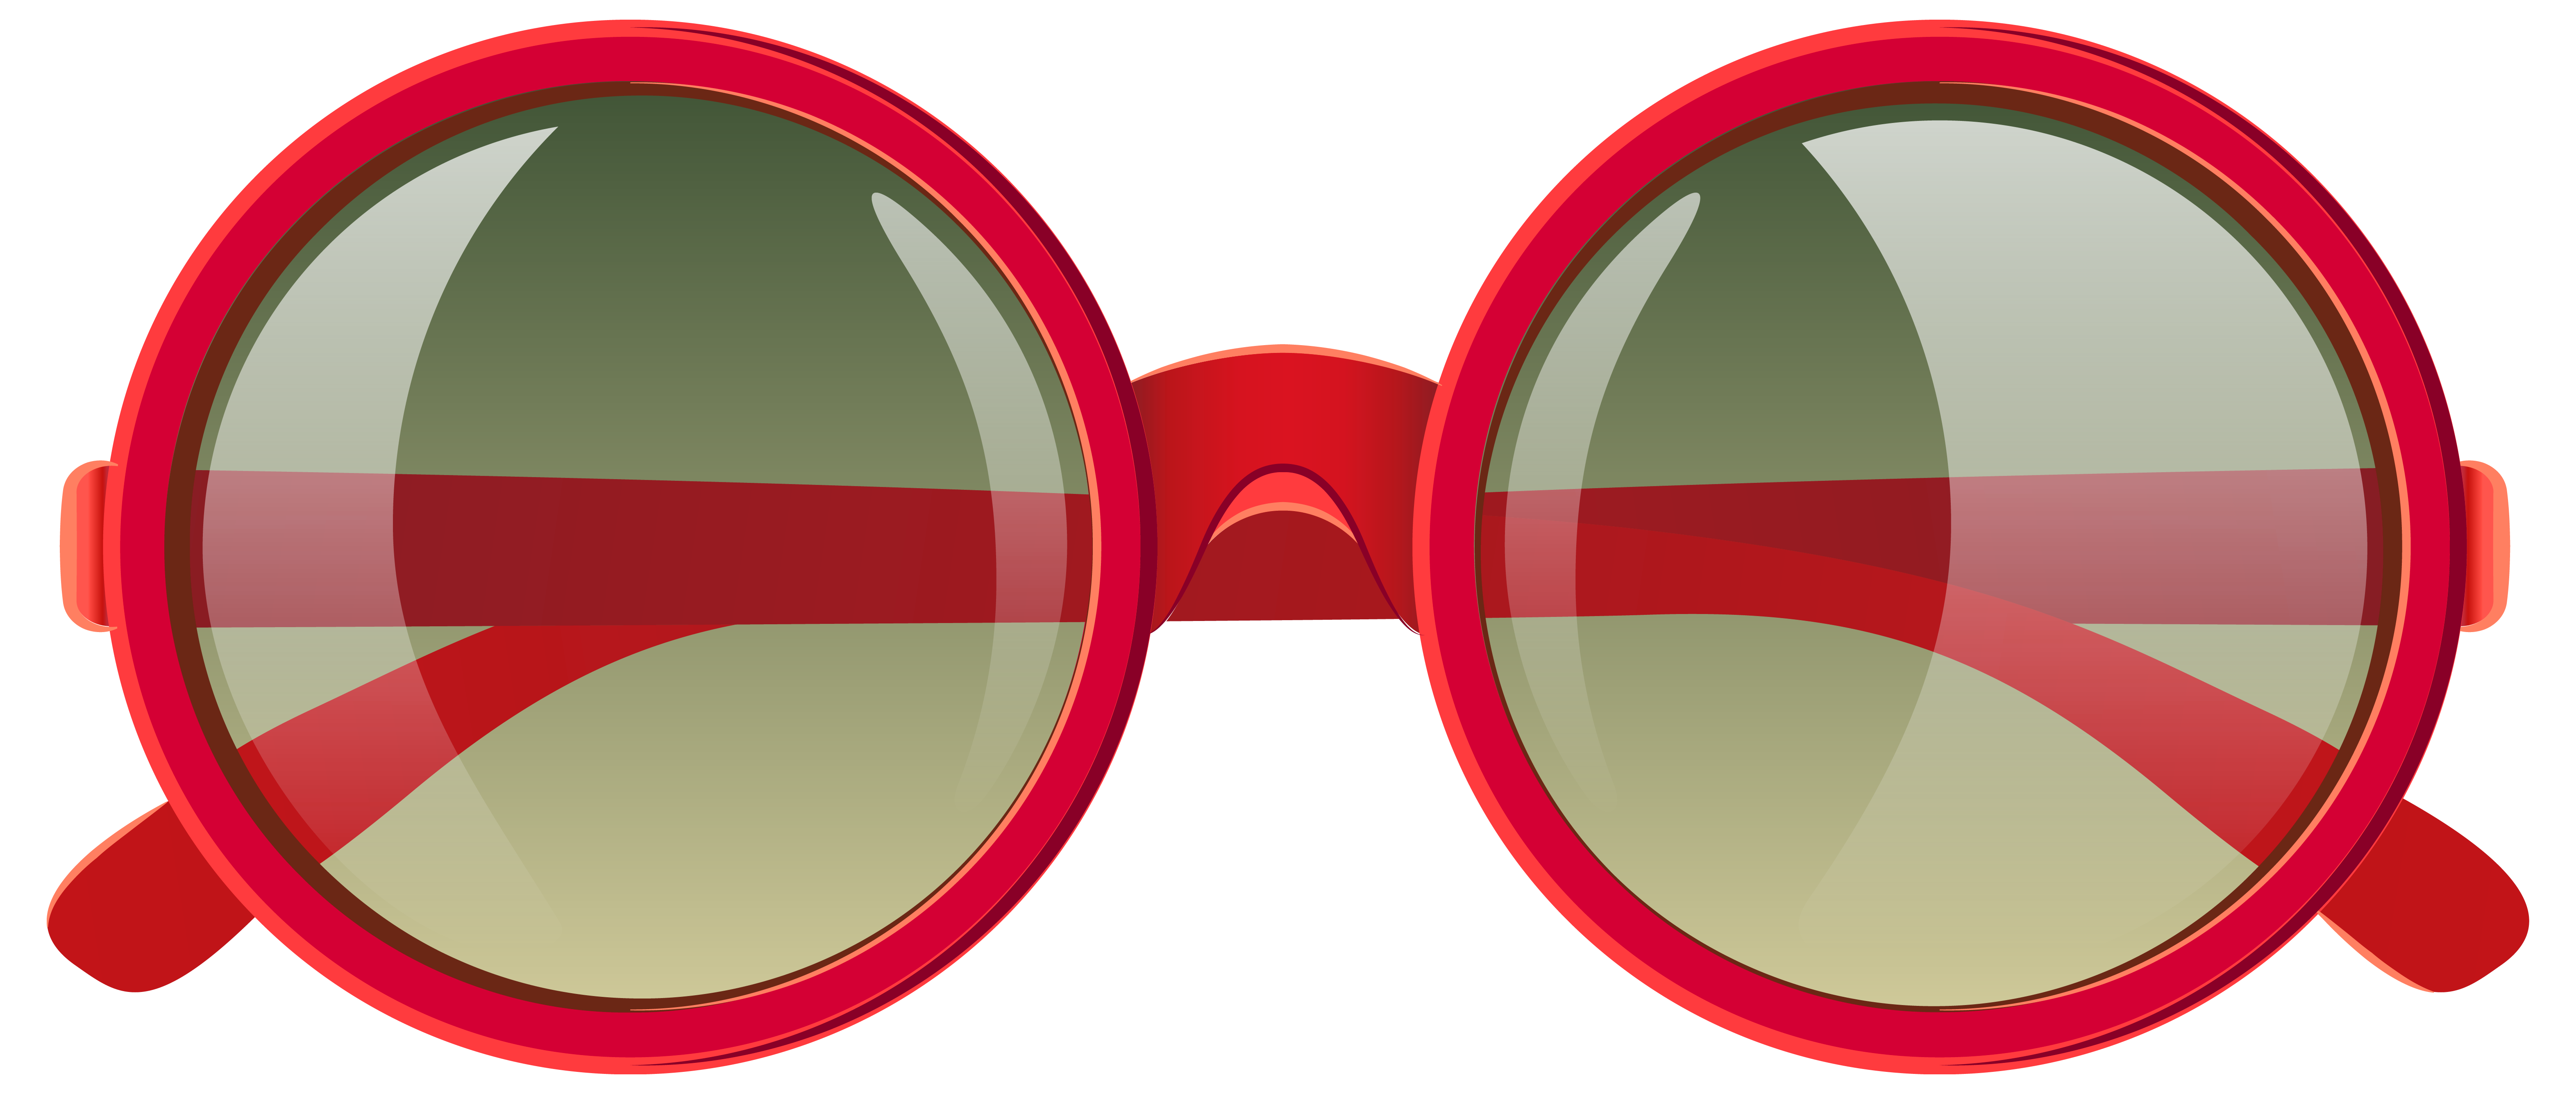 Cute Red Sunglasses Png Clipart Image Gallery Yopriceville High Quality Images And Transparent Png Free Clipart In 2020 Red Sunglasses Clipart Images Sunglasses